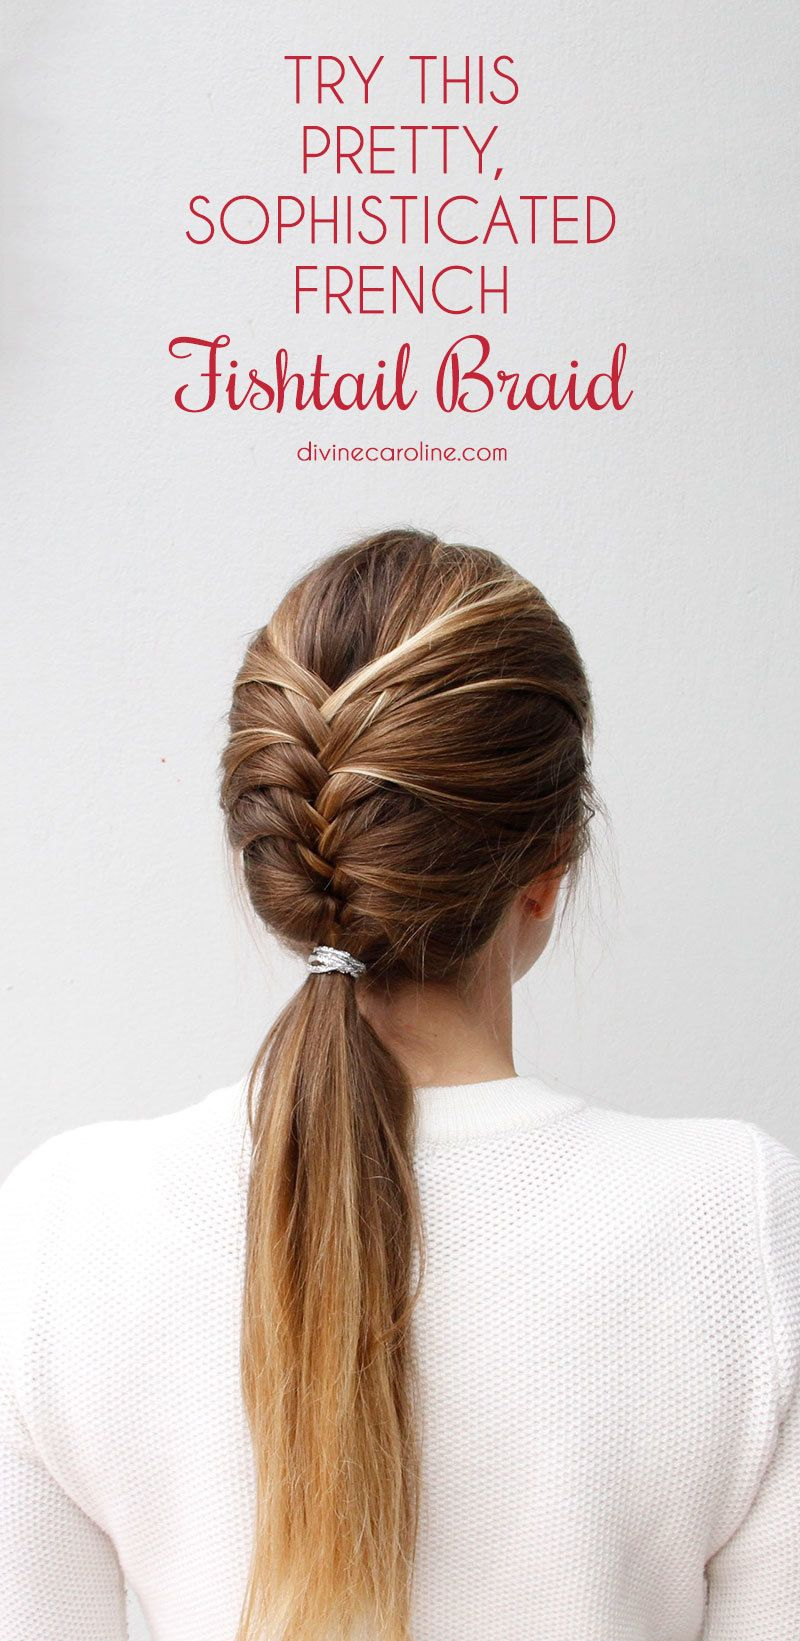 fishtail braid instructions step by step